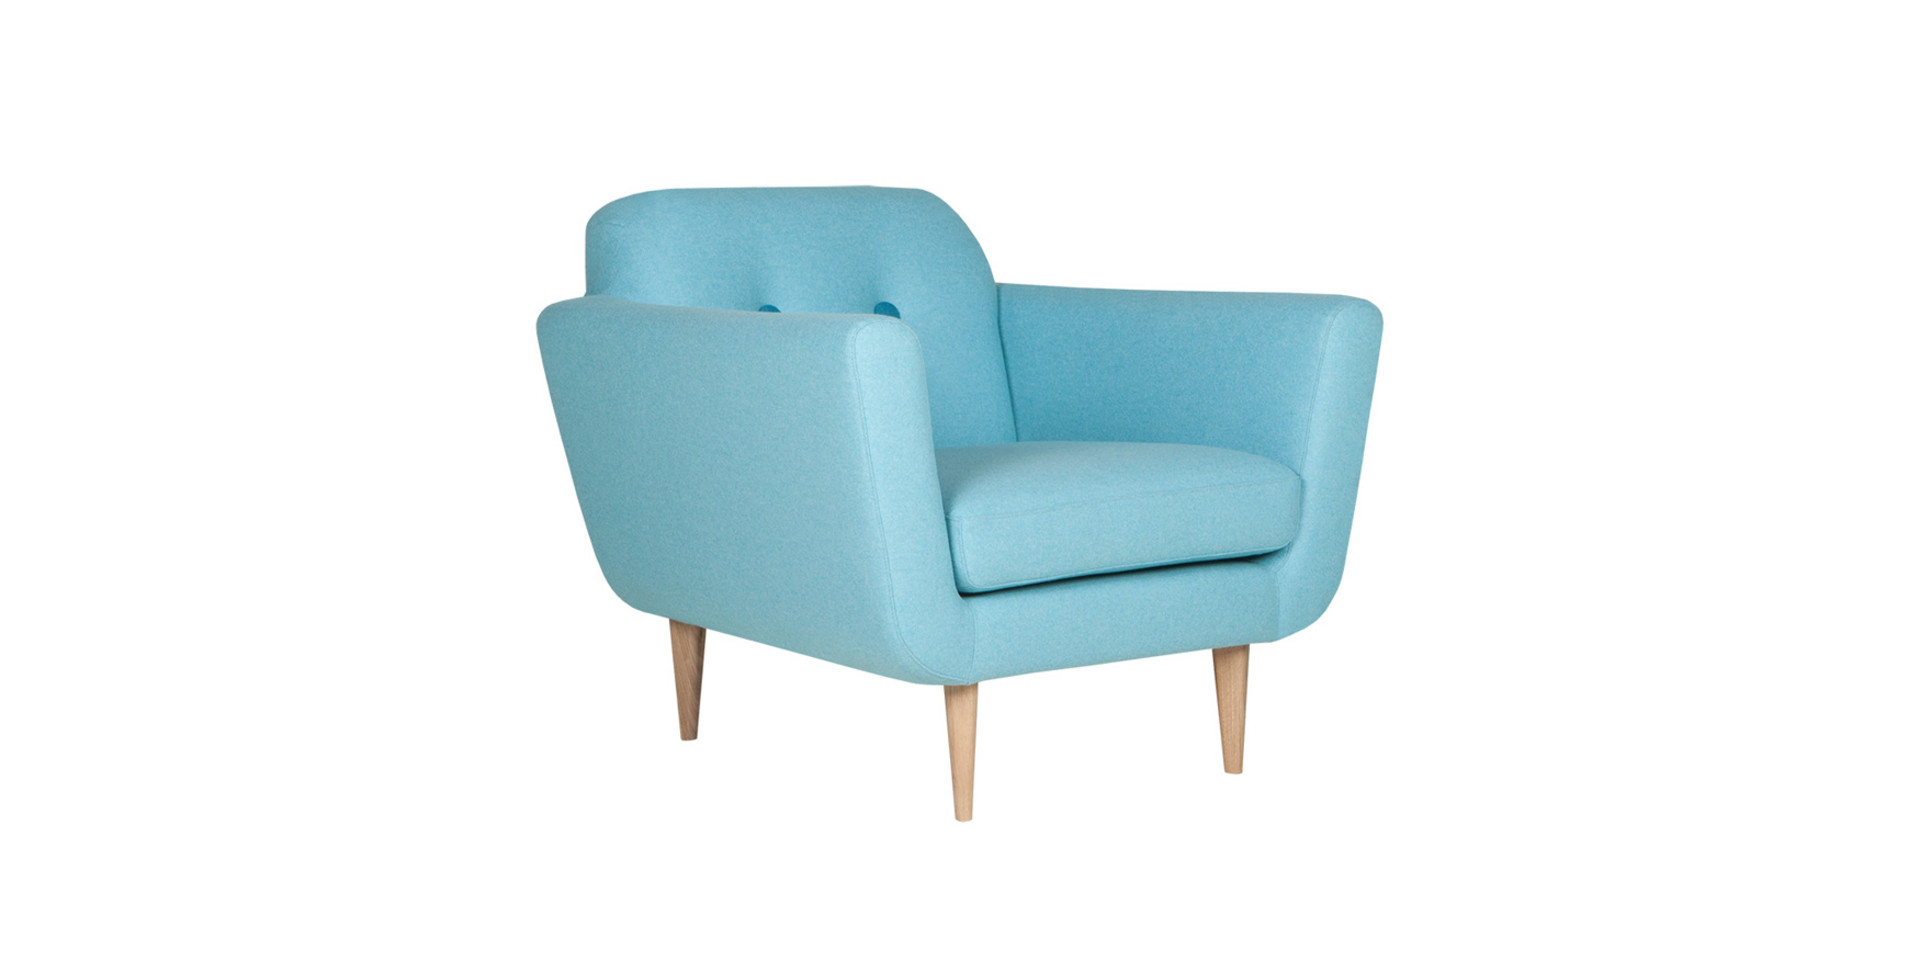 OTTO_armchair_panno2274_light_turquoise_buttons_panno2240_turquoise_2